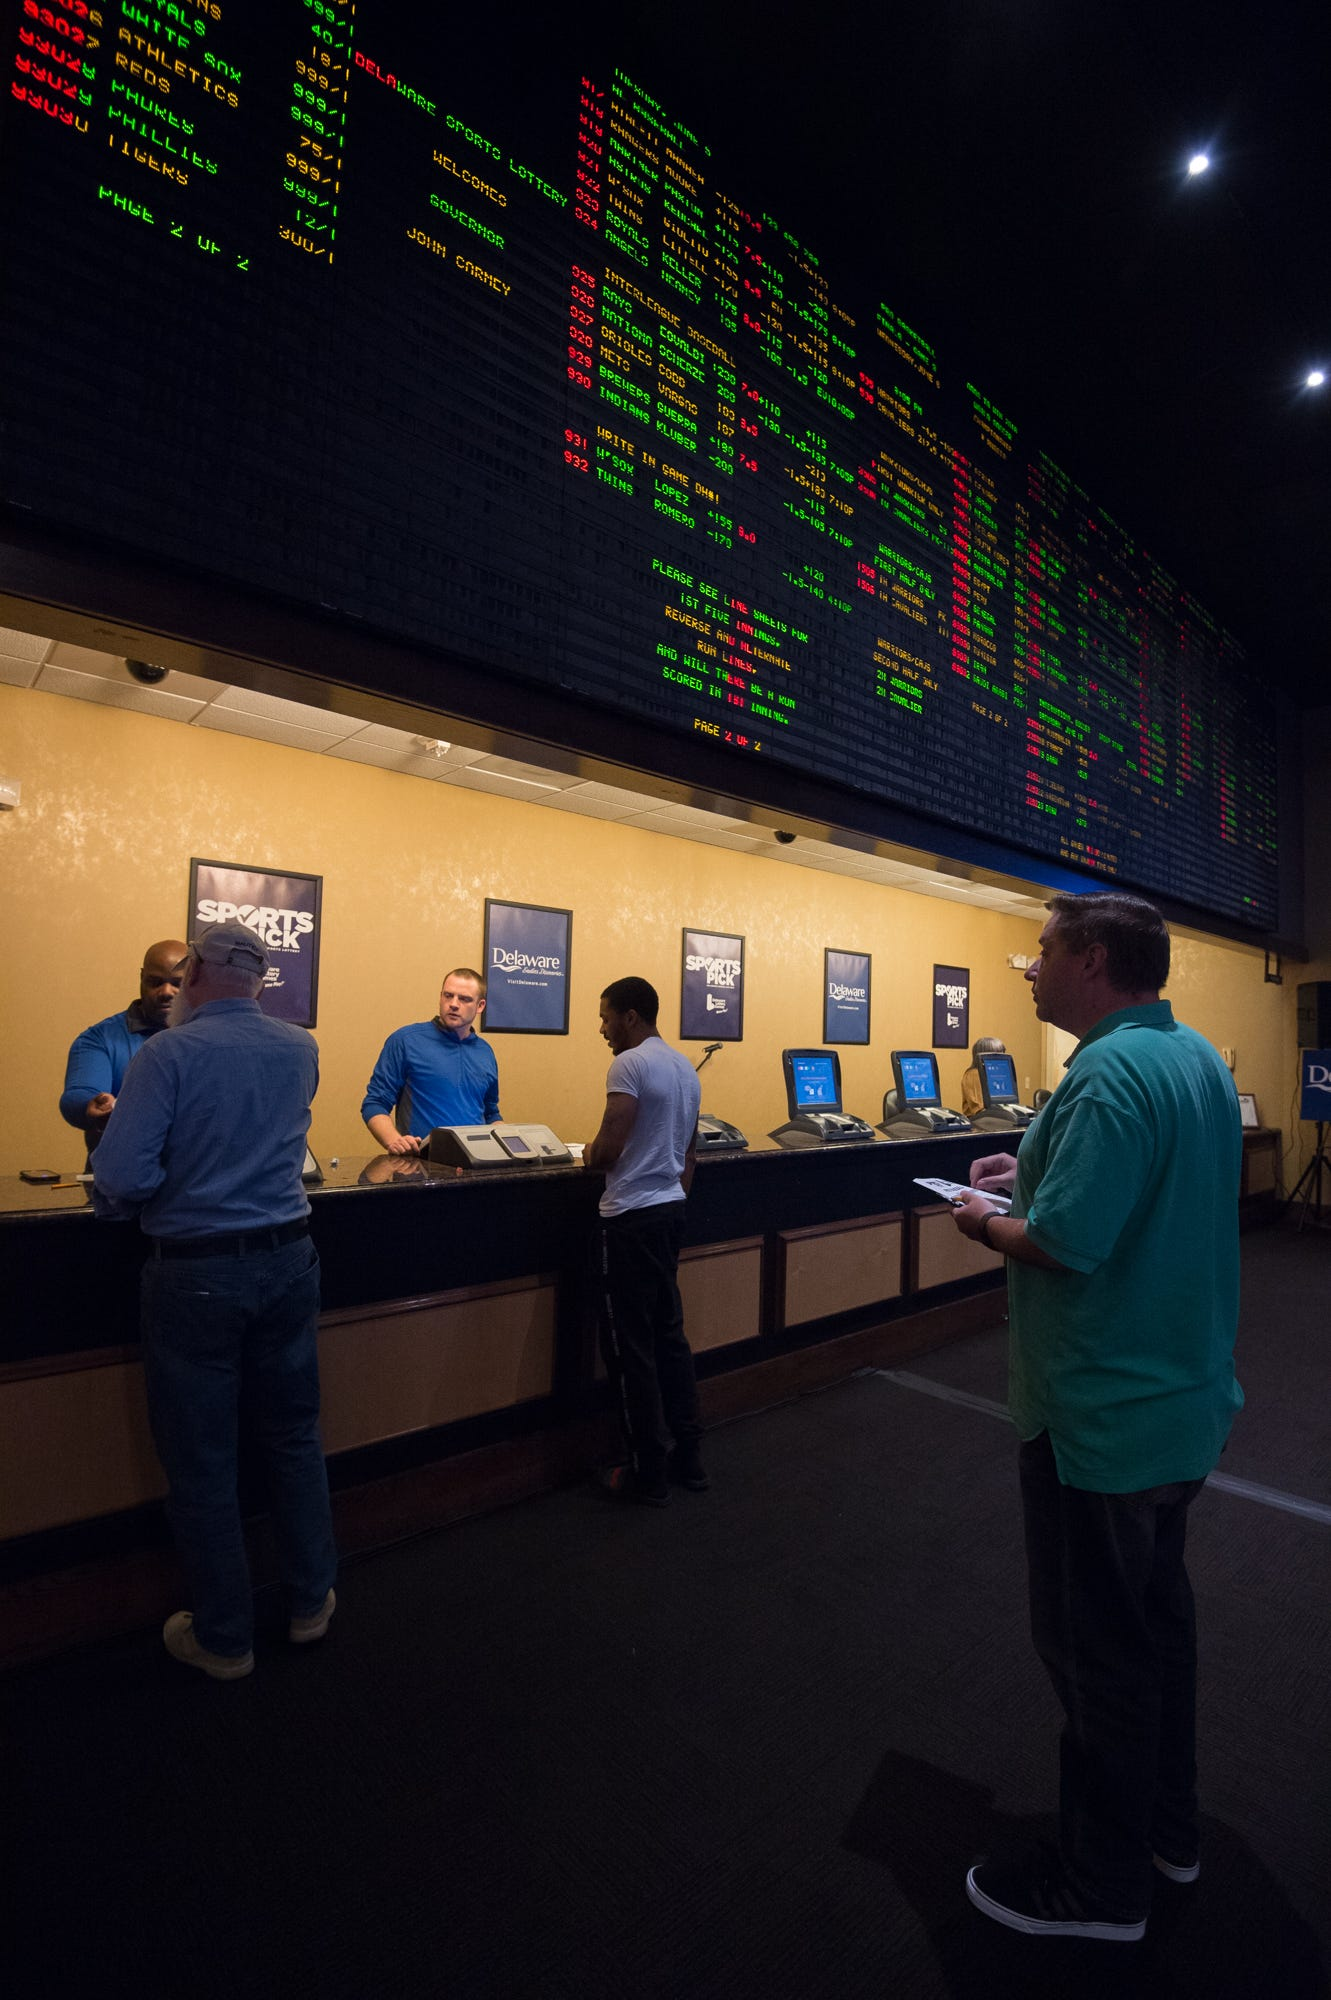 history of gambling in las vegas